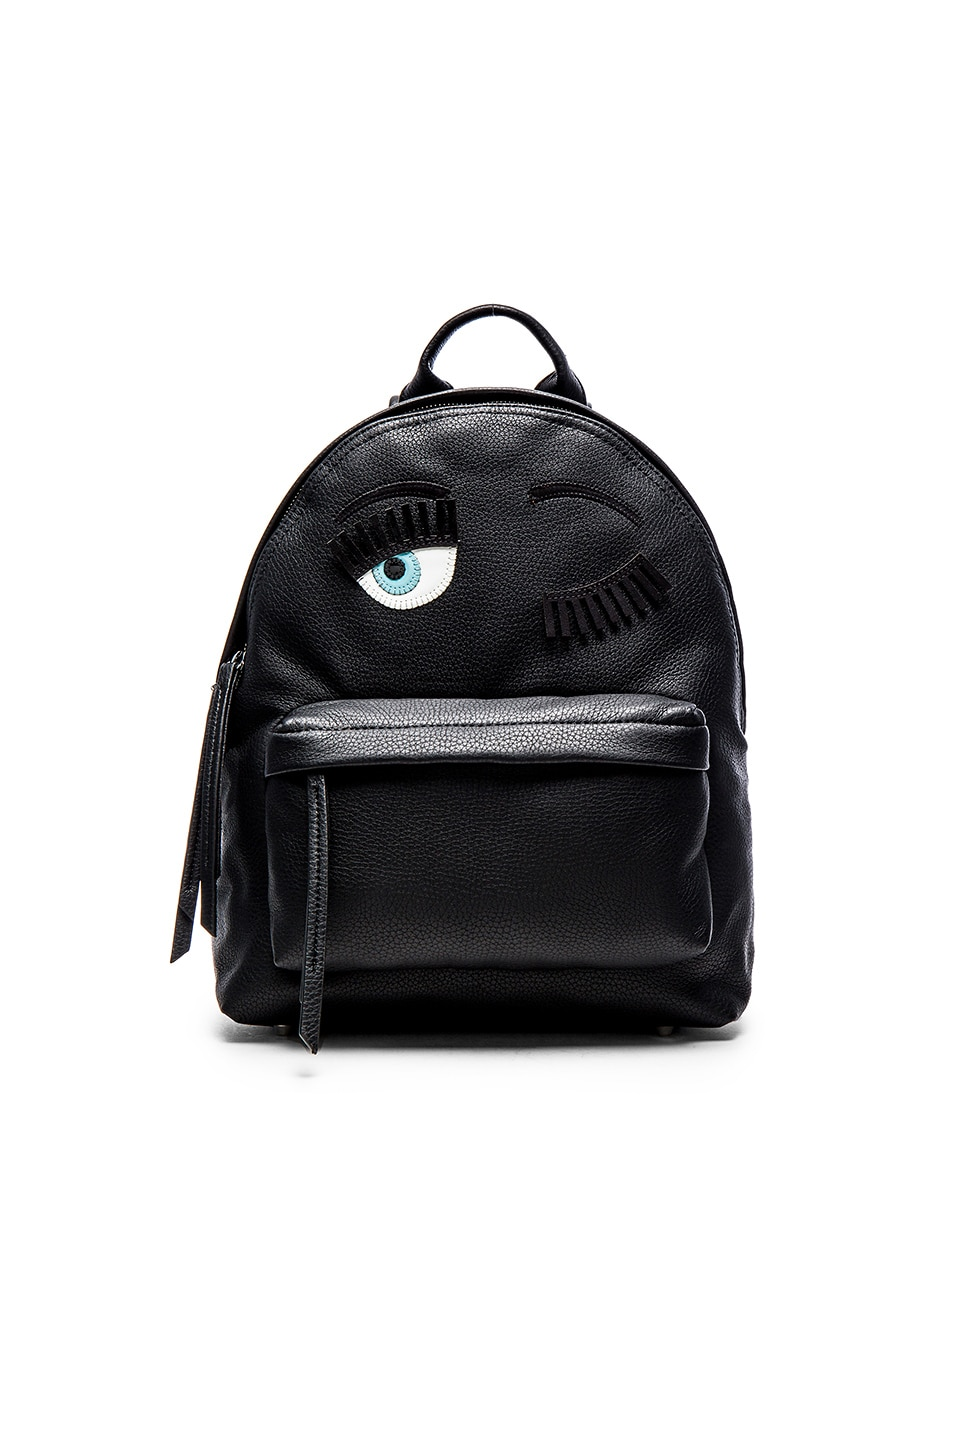 Chiara Ferragni Backpack in Black